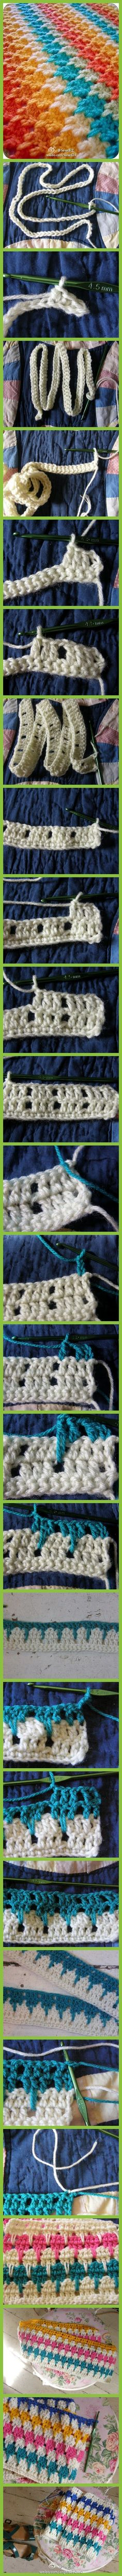 Nice stitch photo tutorial